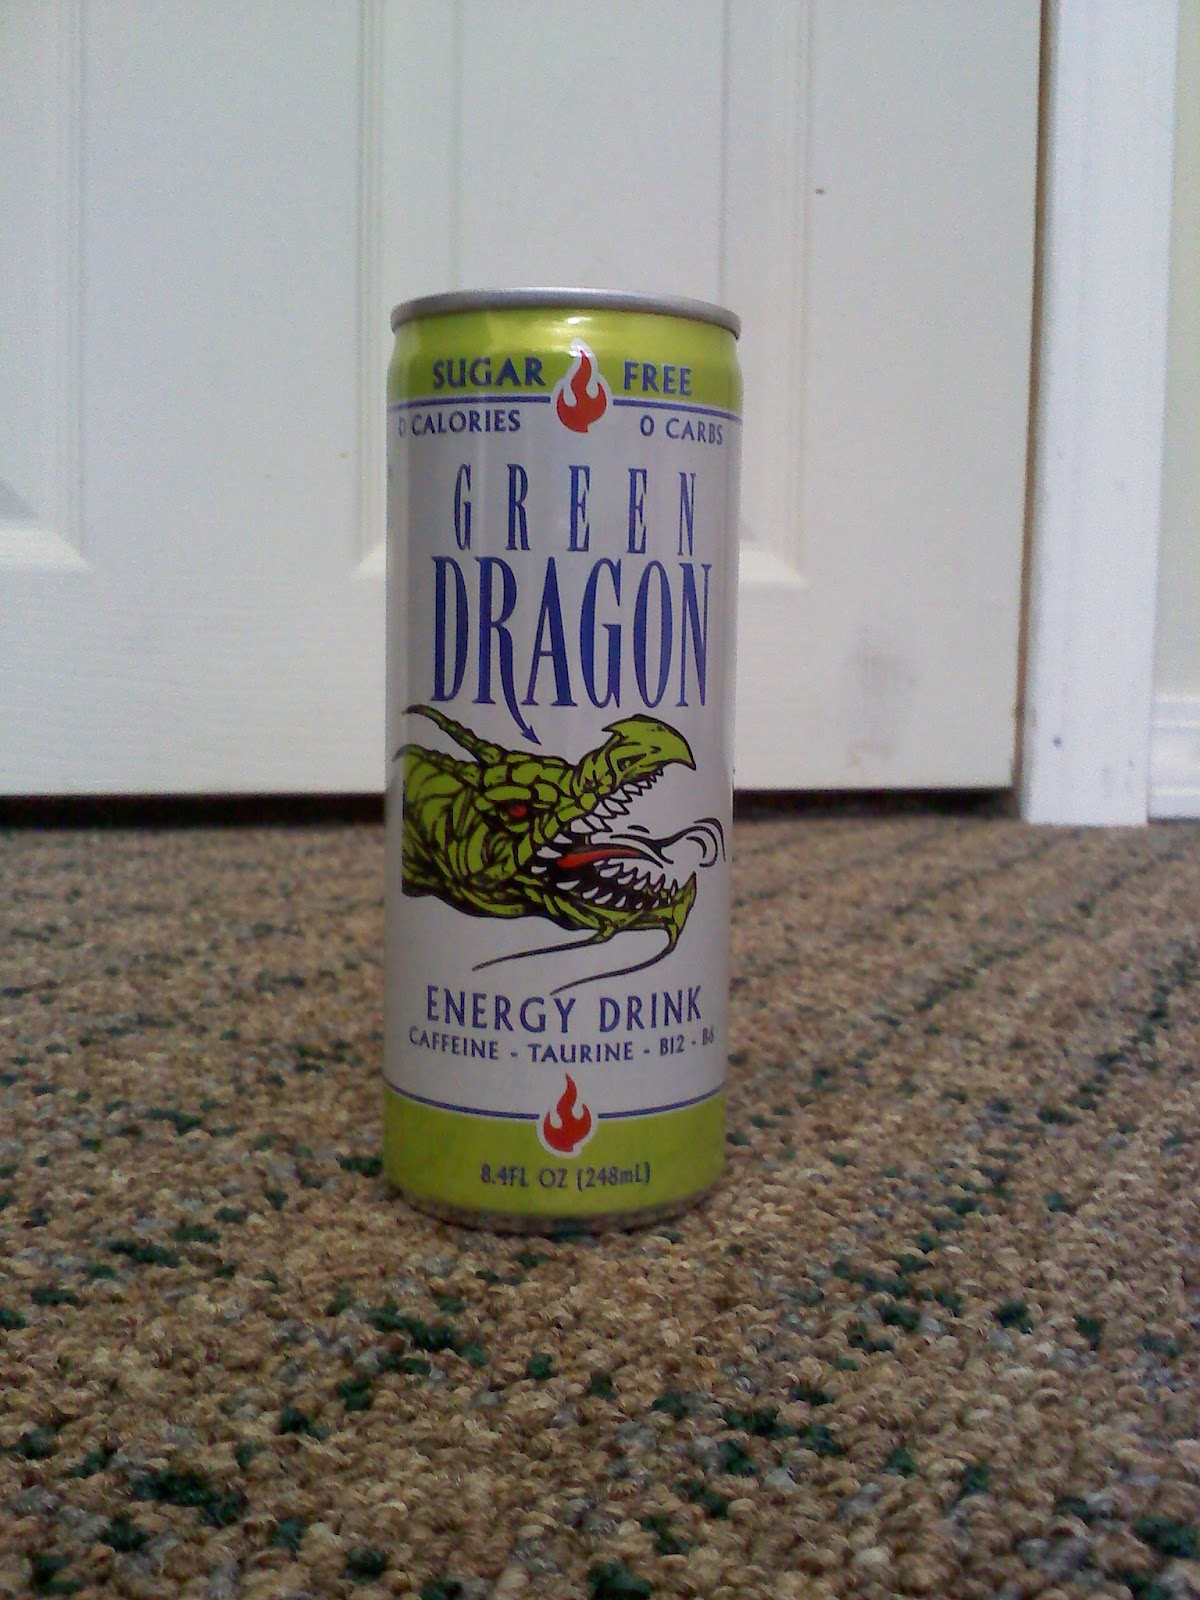 CAFFEINE!: Review for Green Dragon Sugar Free